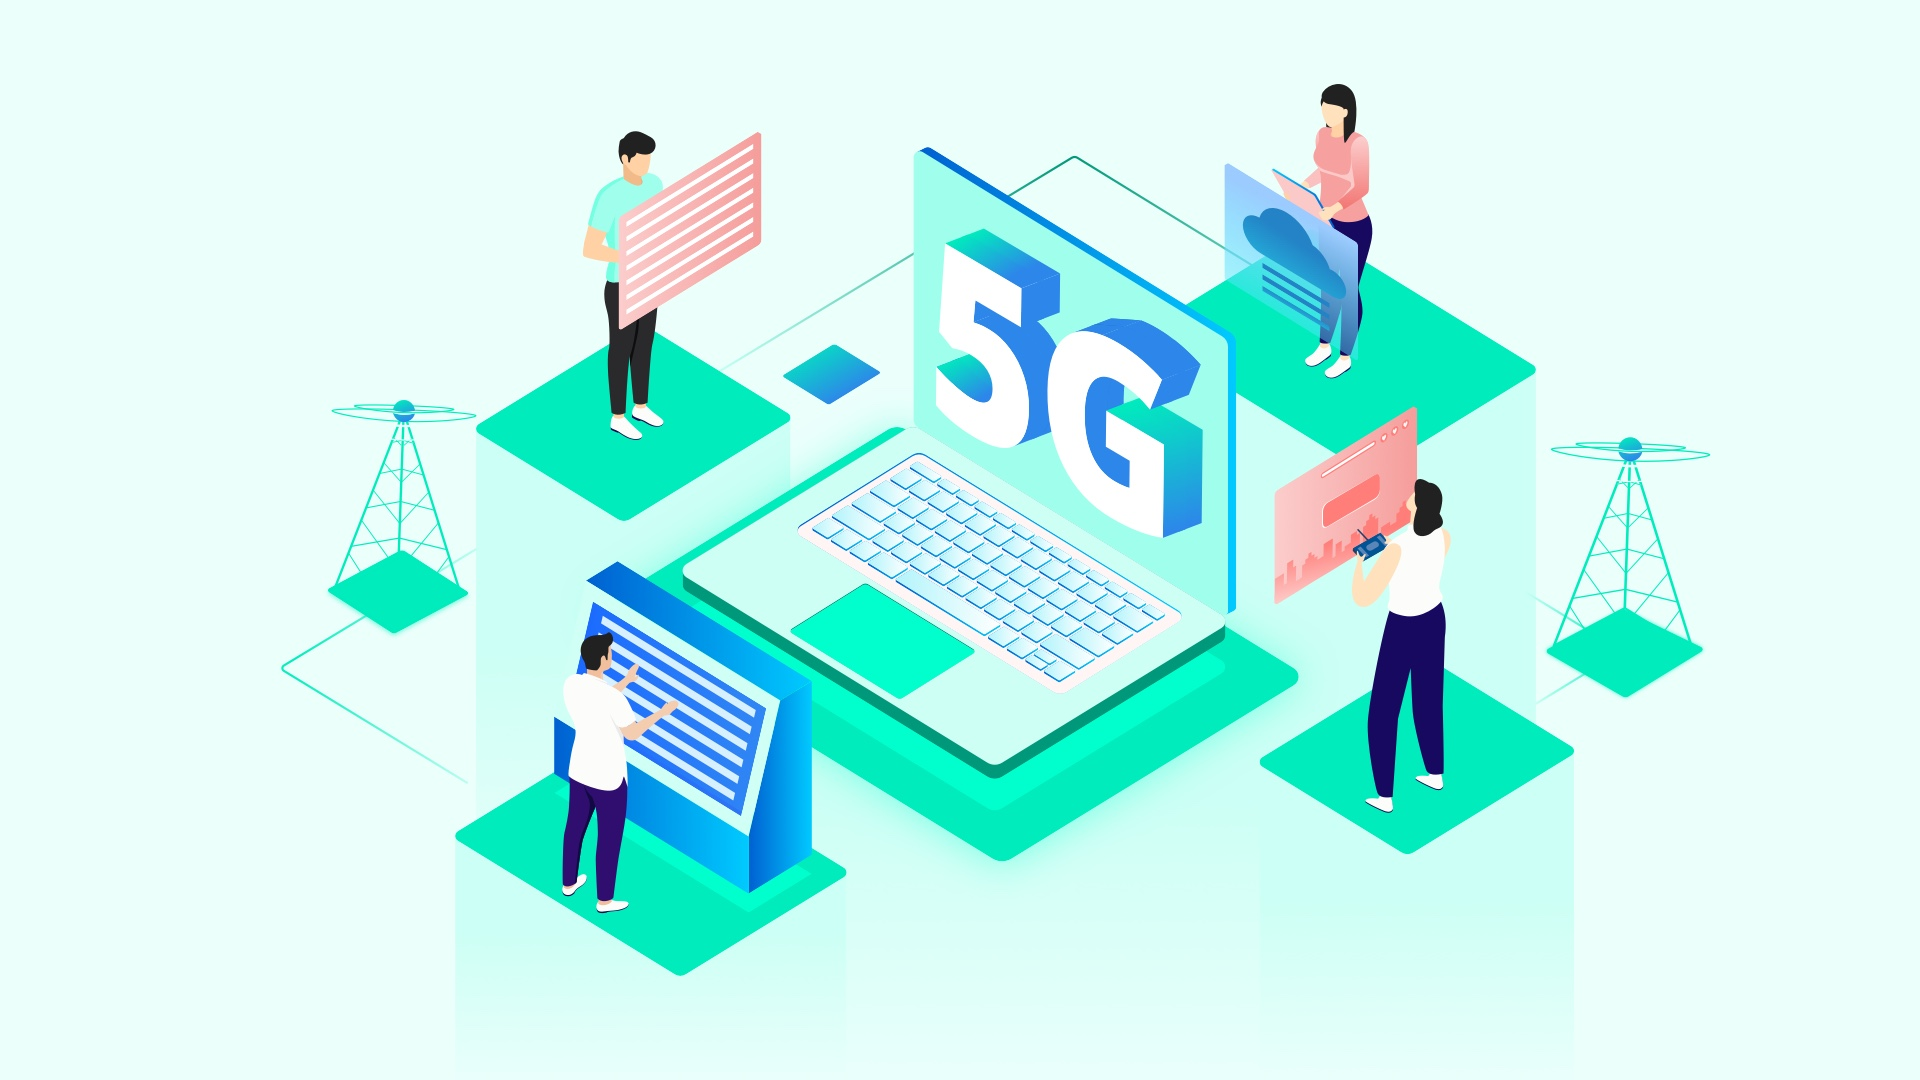 5G: A glimpse into the future